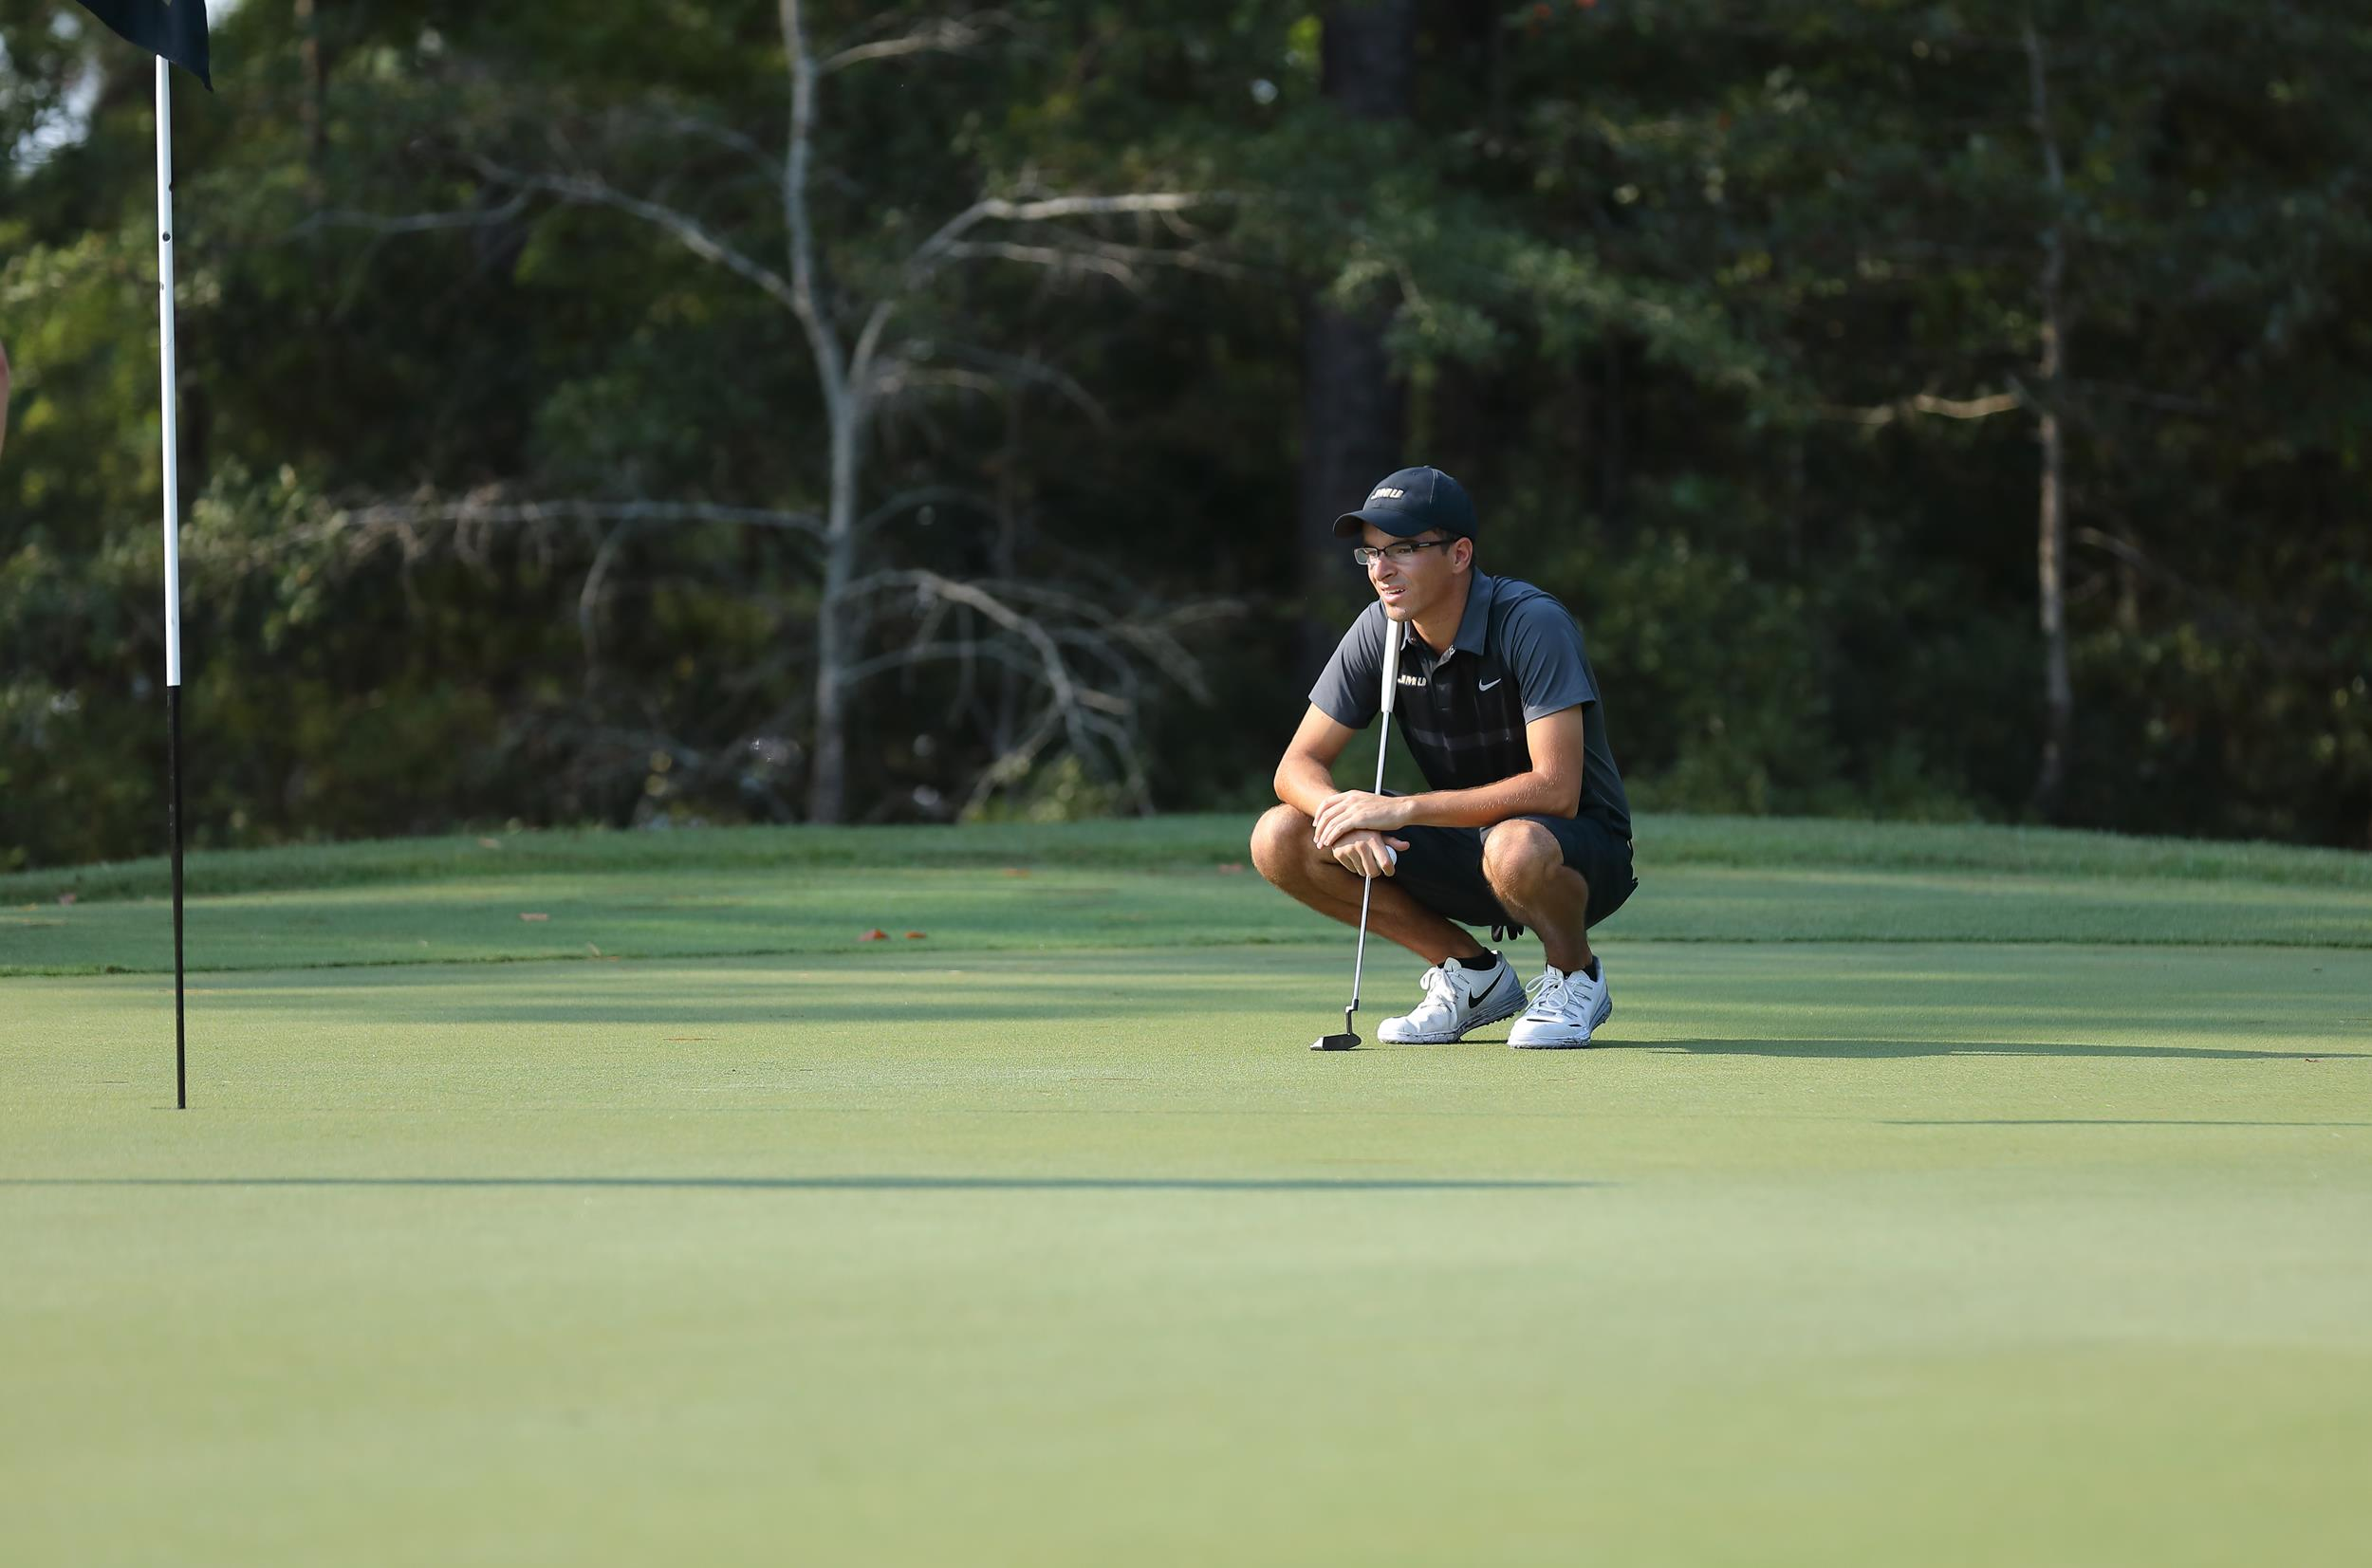 Men's Golf: Cole Named First Team All-State)